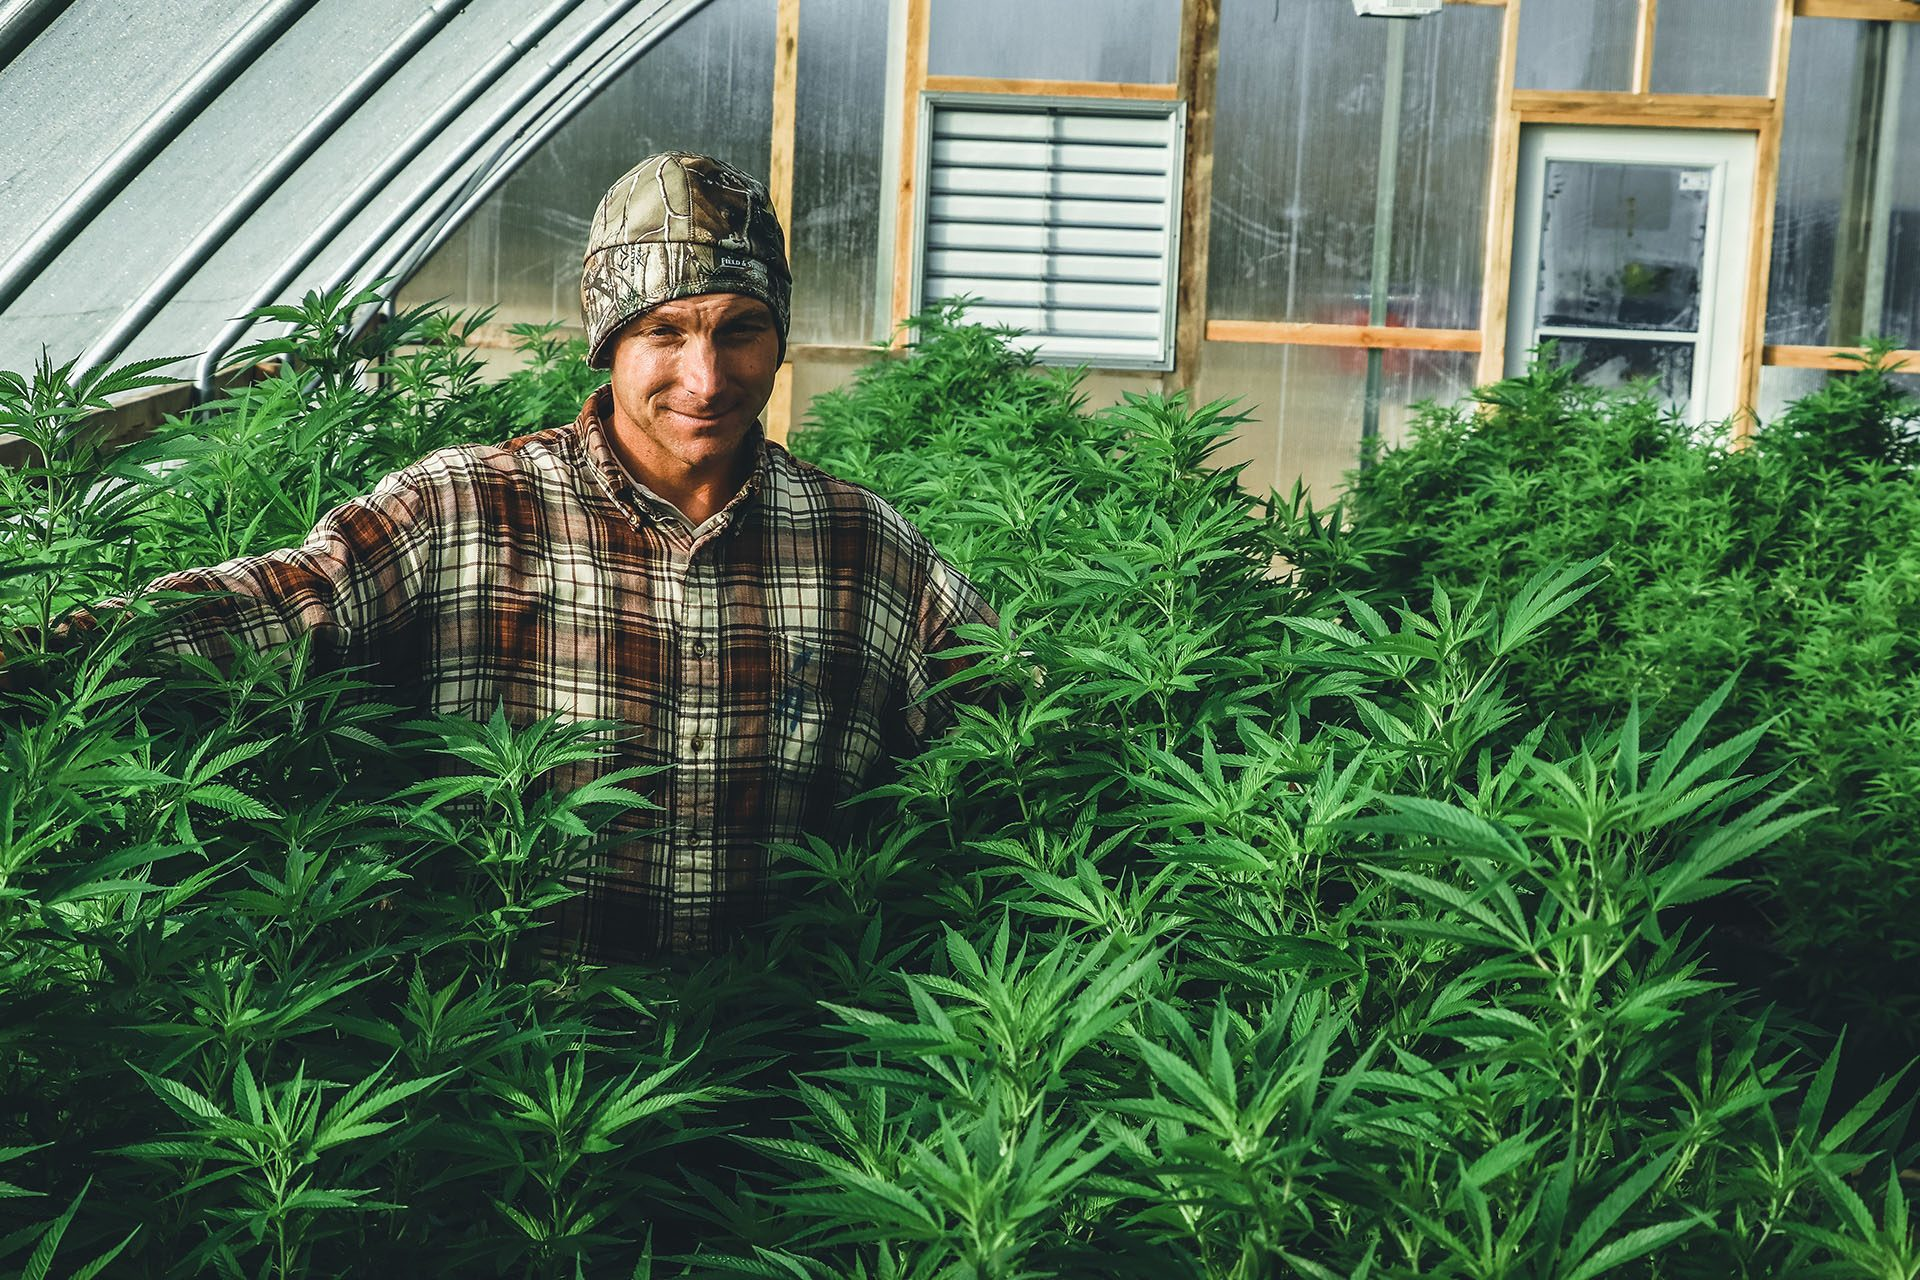 Male Cannabis Grower standing in cannabis filled greenhouse